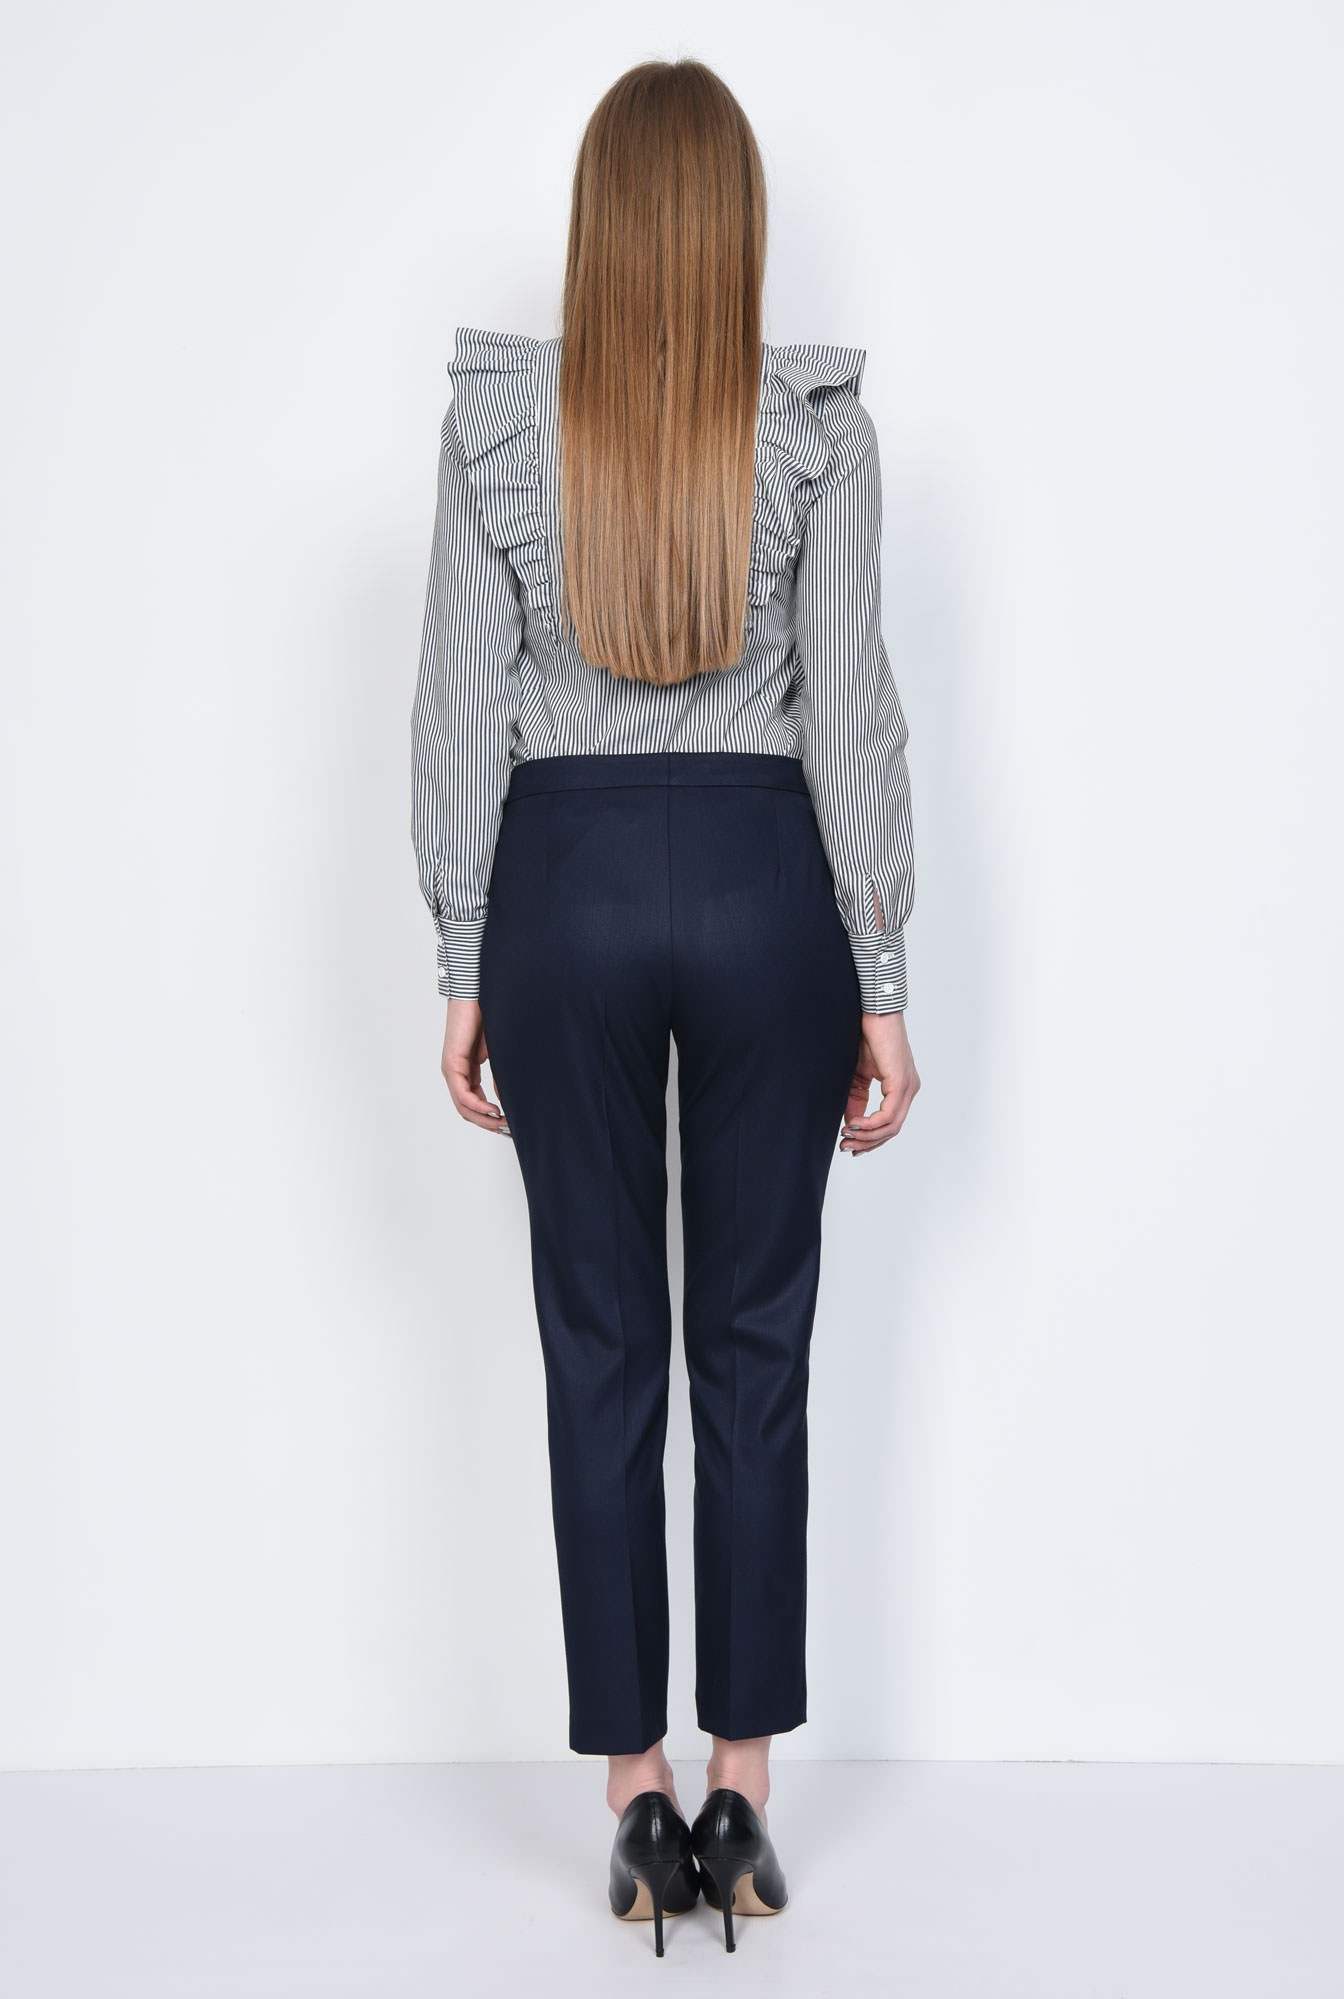 1 - PANTALON OFFICE CONIC PT 143-BLEUMARIN